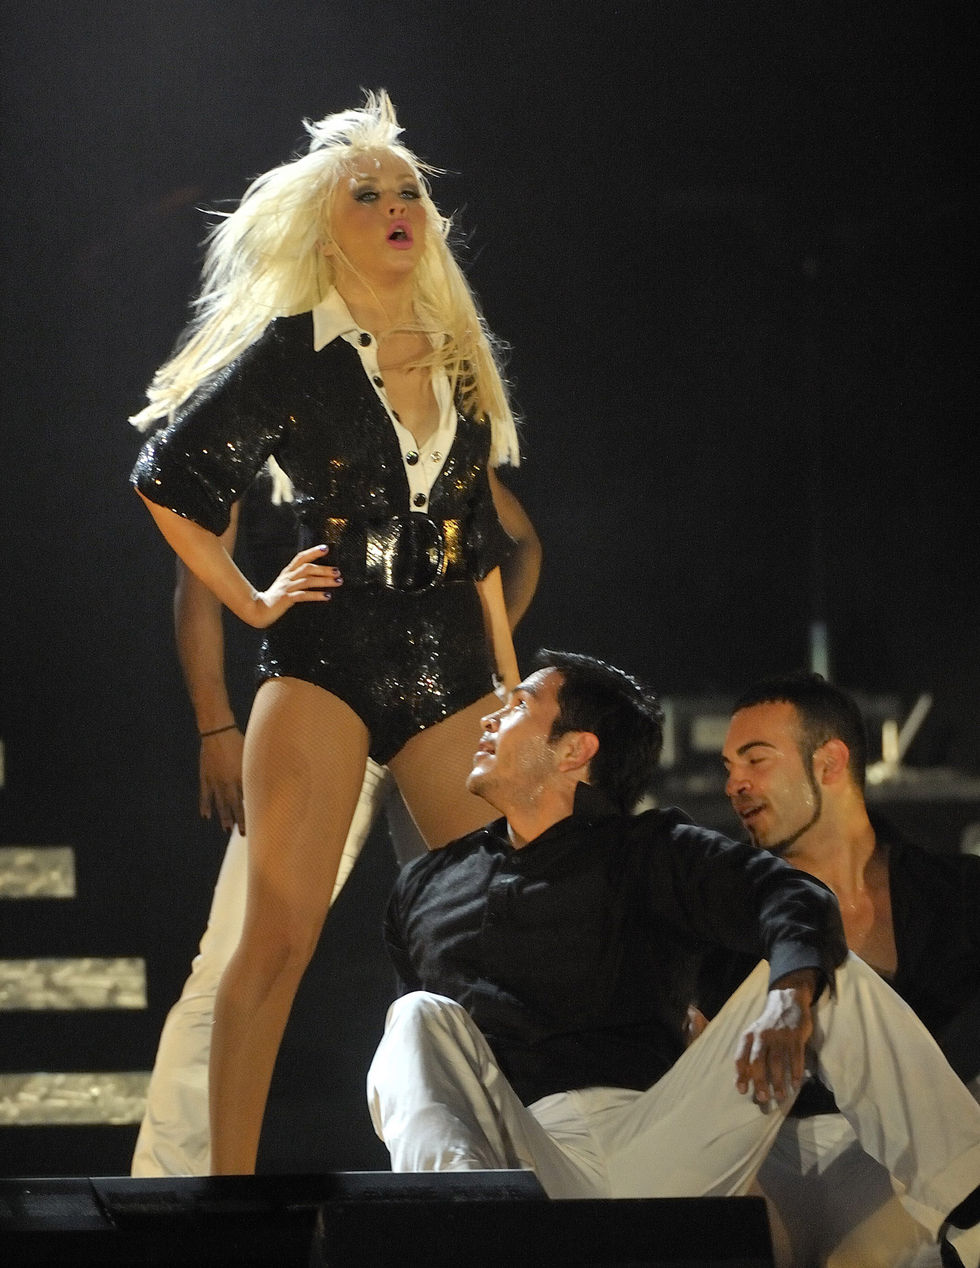 christina-aguilera-performs-at-emirates-palace-hotel-in-abu-dhabi-01